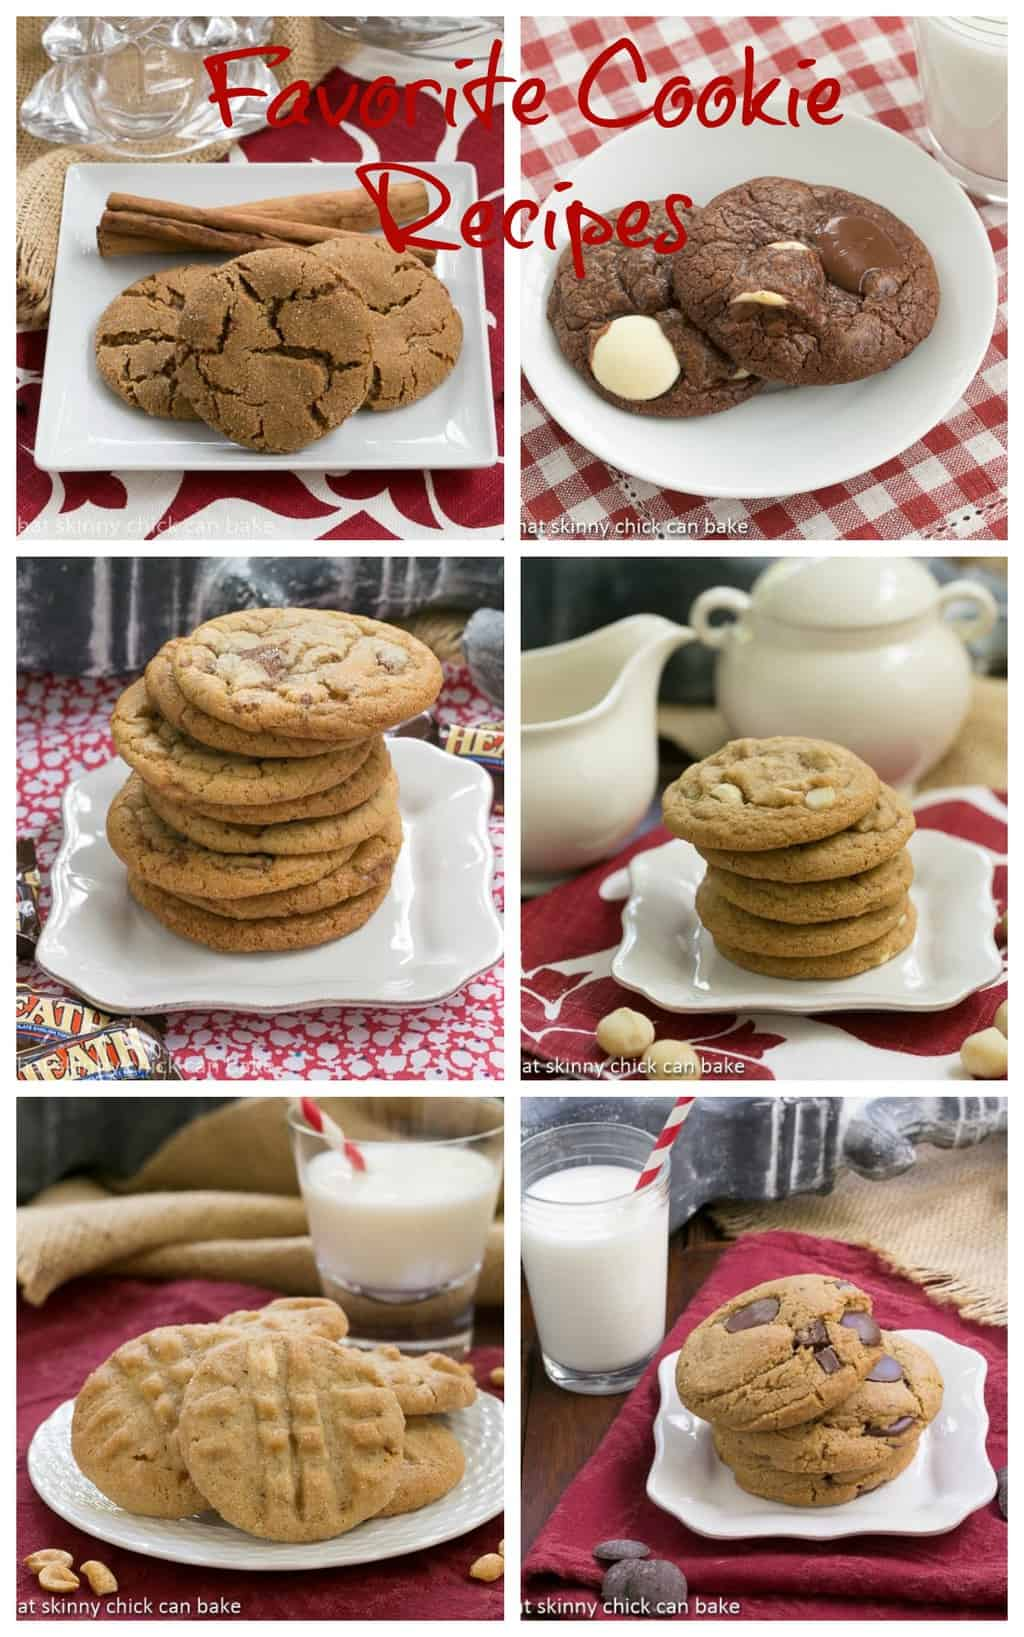 6 of my Favorite Cookie Recipes - if your sweet tooth is acting up, these quick to make cookies options are the remedy! #cookies #desserts #favoritecookies #recipes